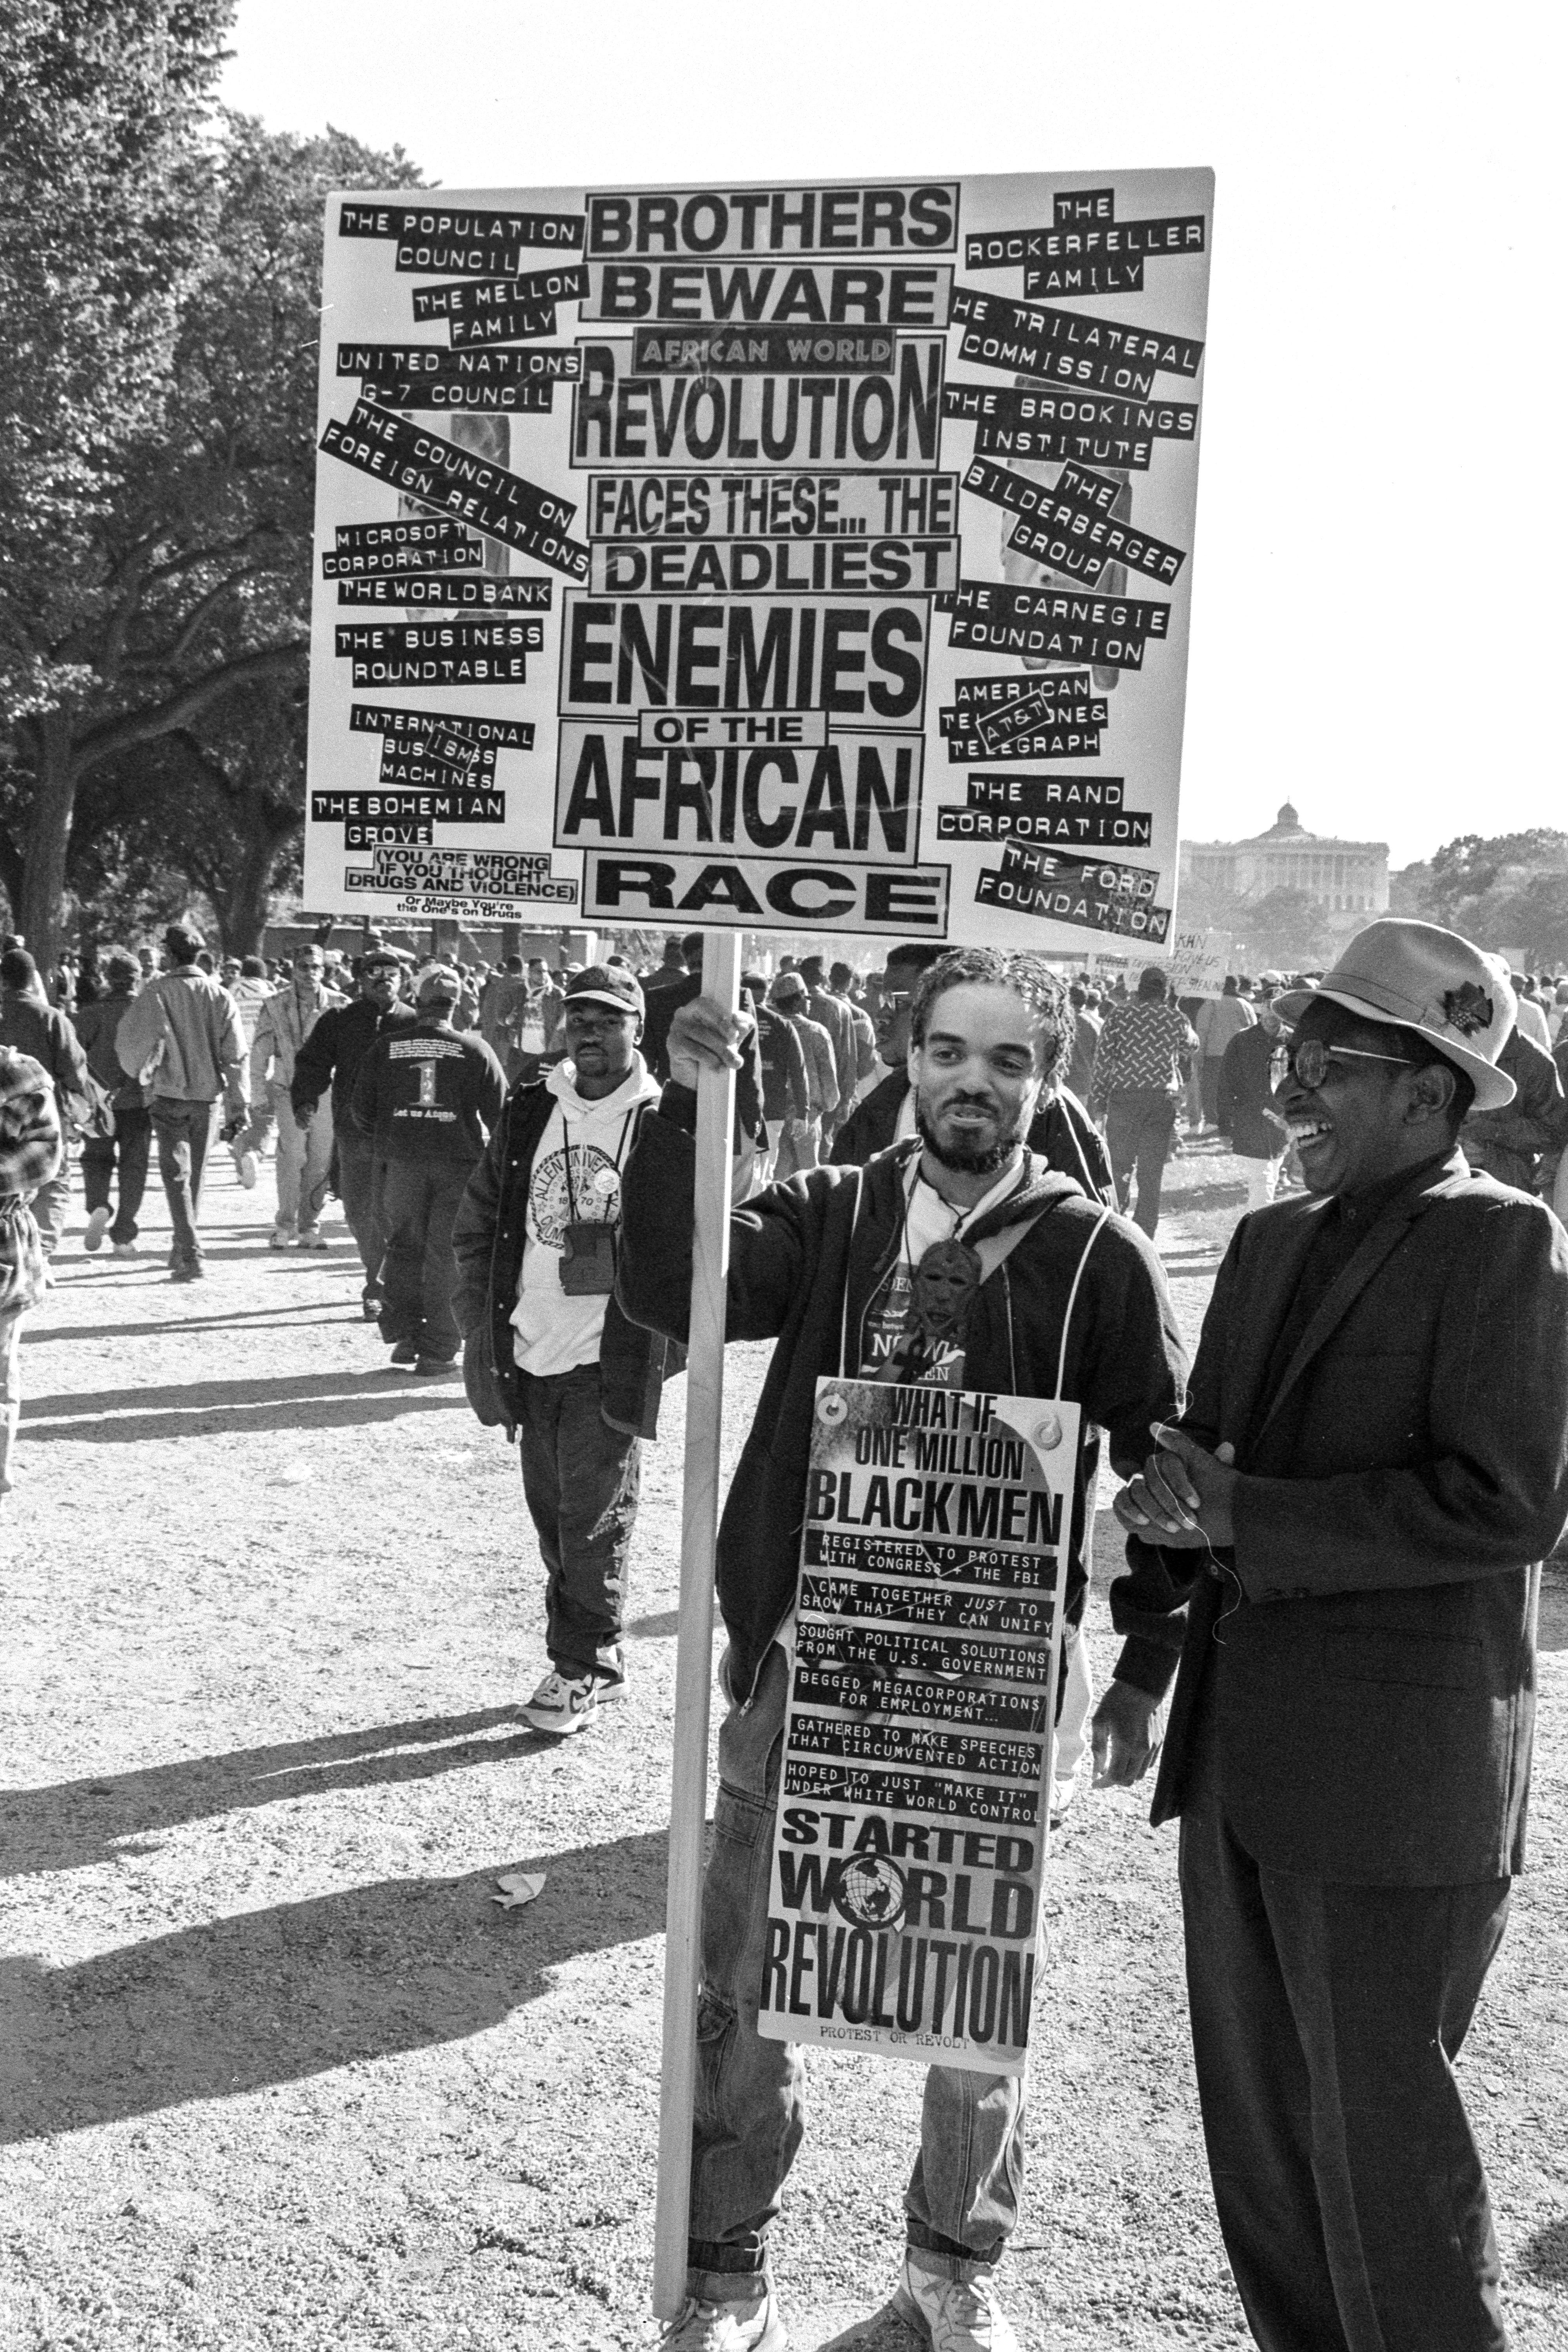 The Million Man March of 1995 carried a multitude of message and missions, some of them reflected in a handmade sign displayed by one of the participants.